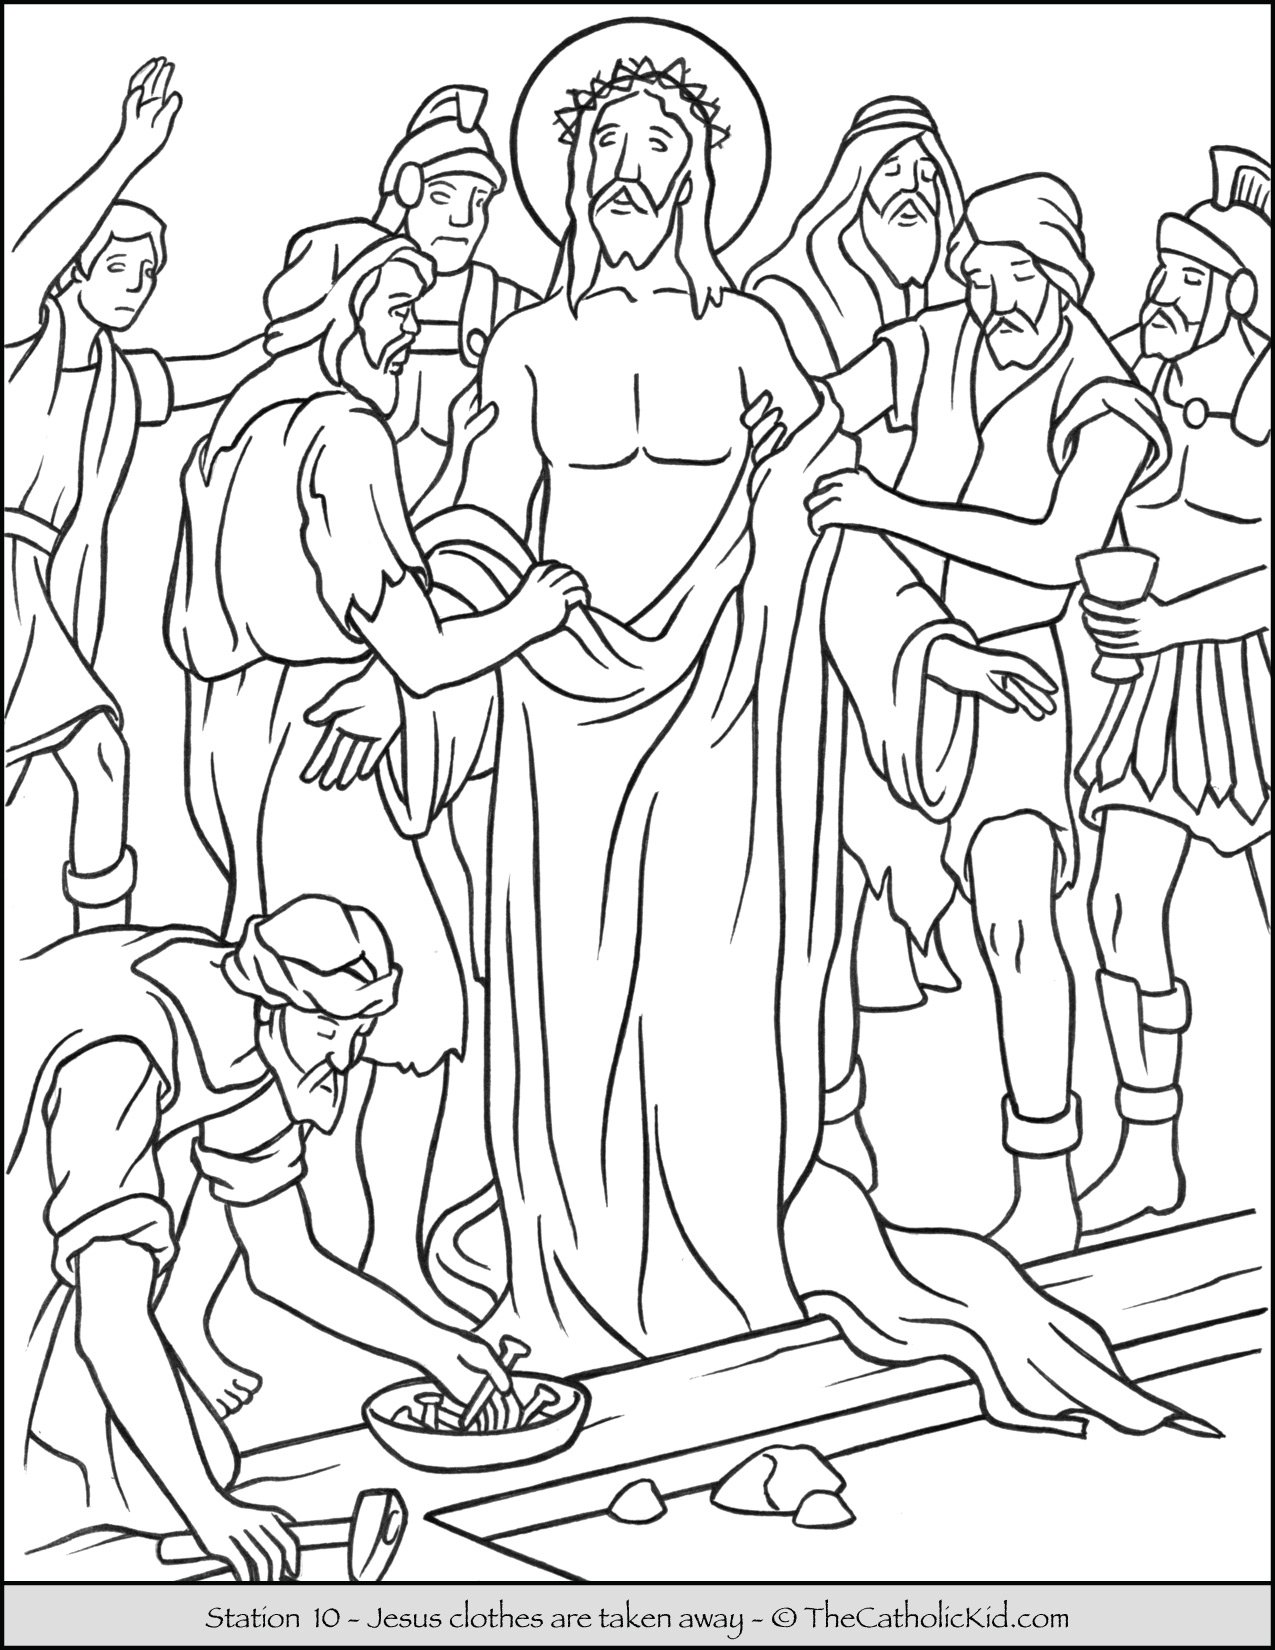 Stations of the Cross Catholic Coloring Pages for Kids 10